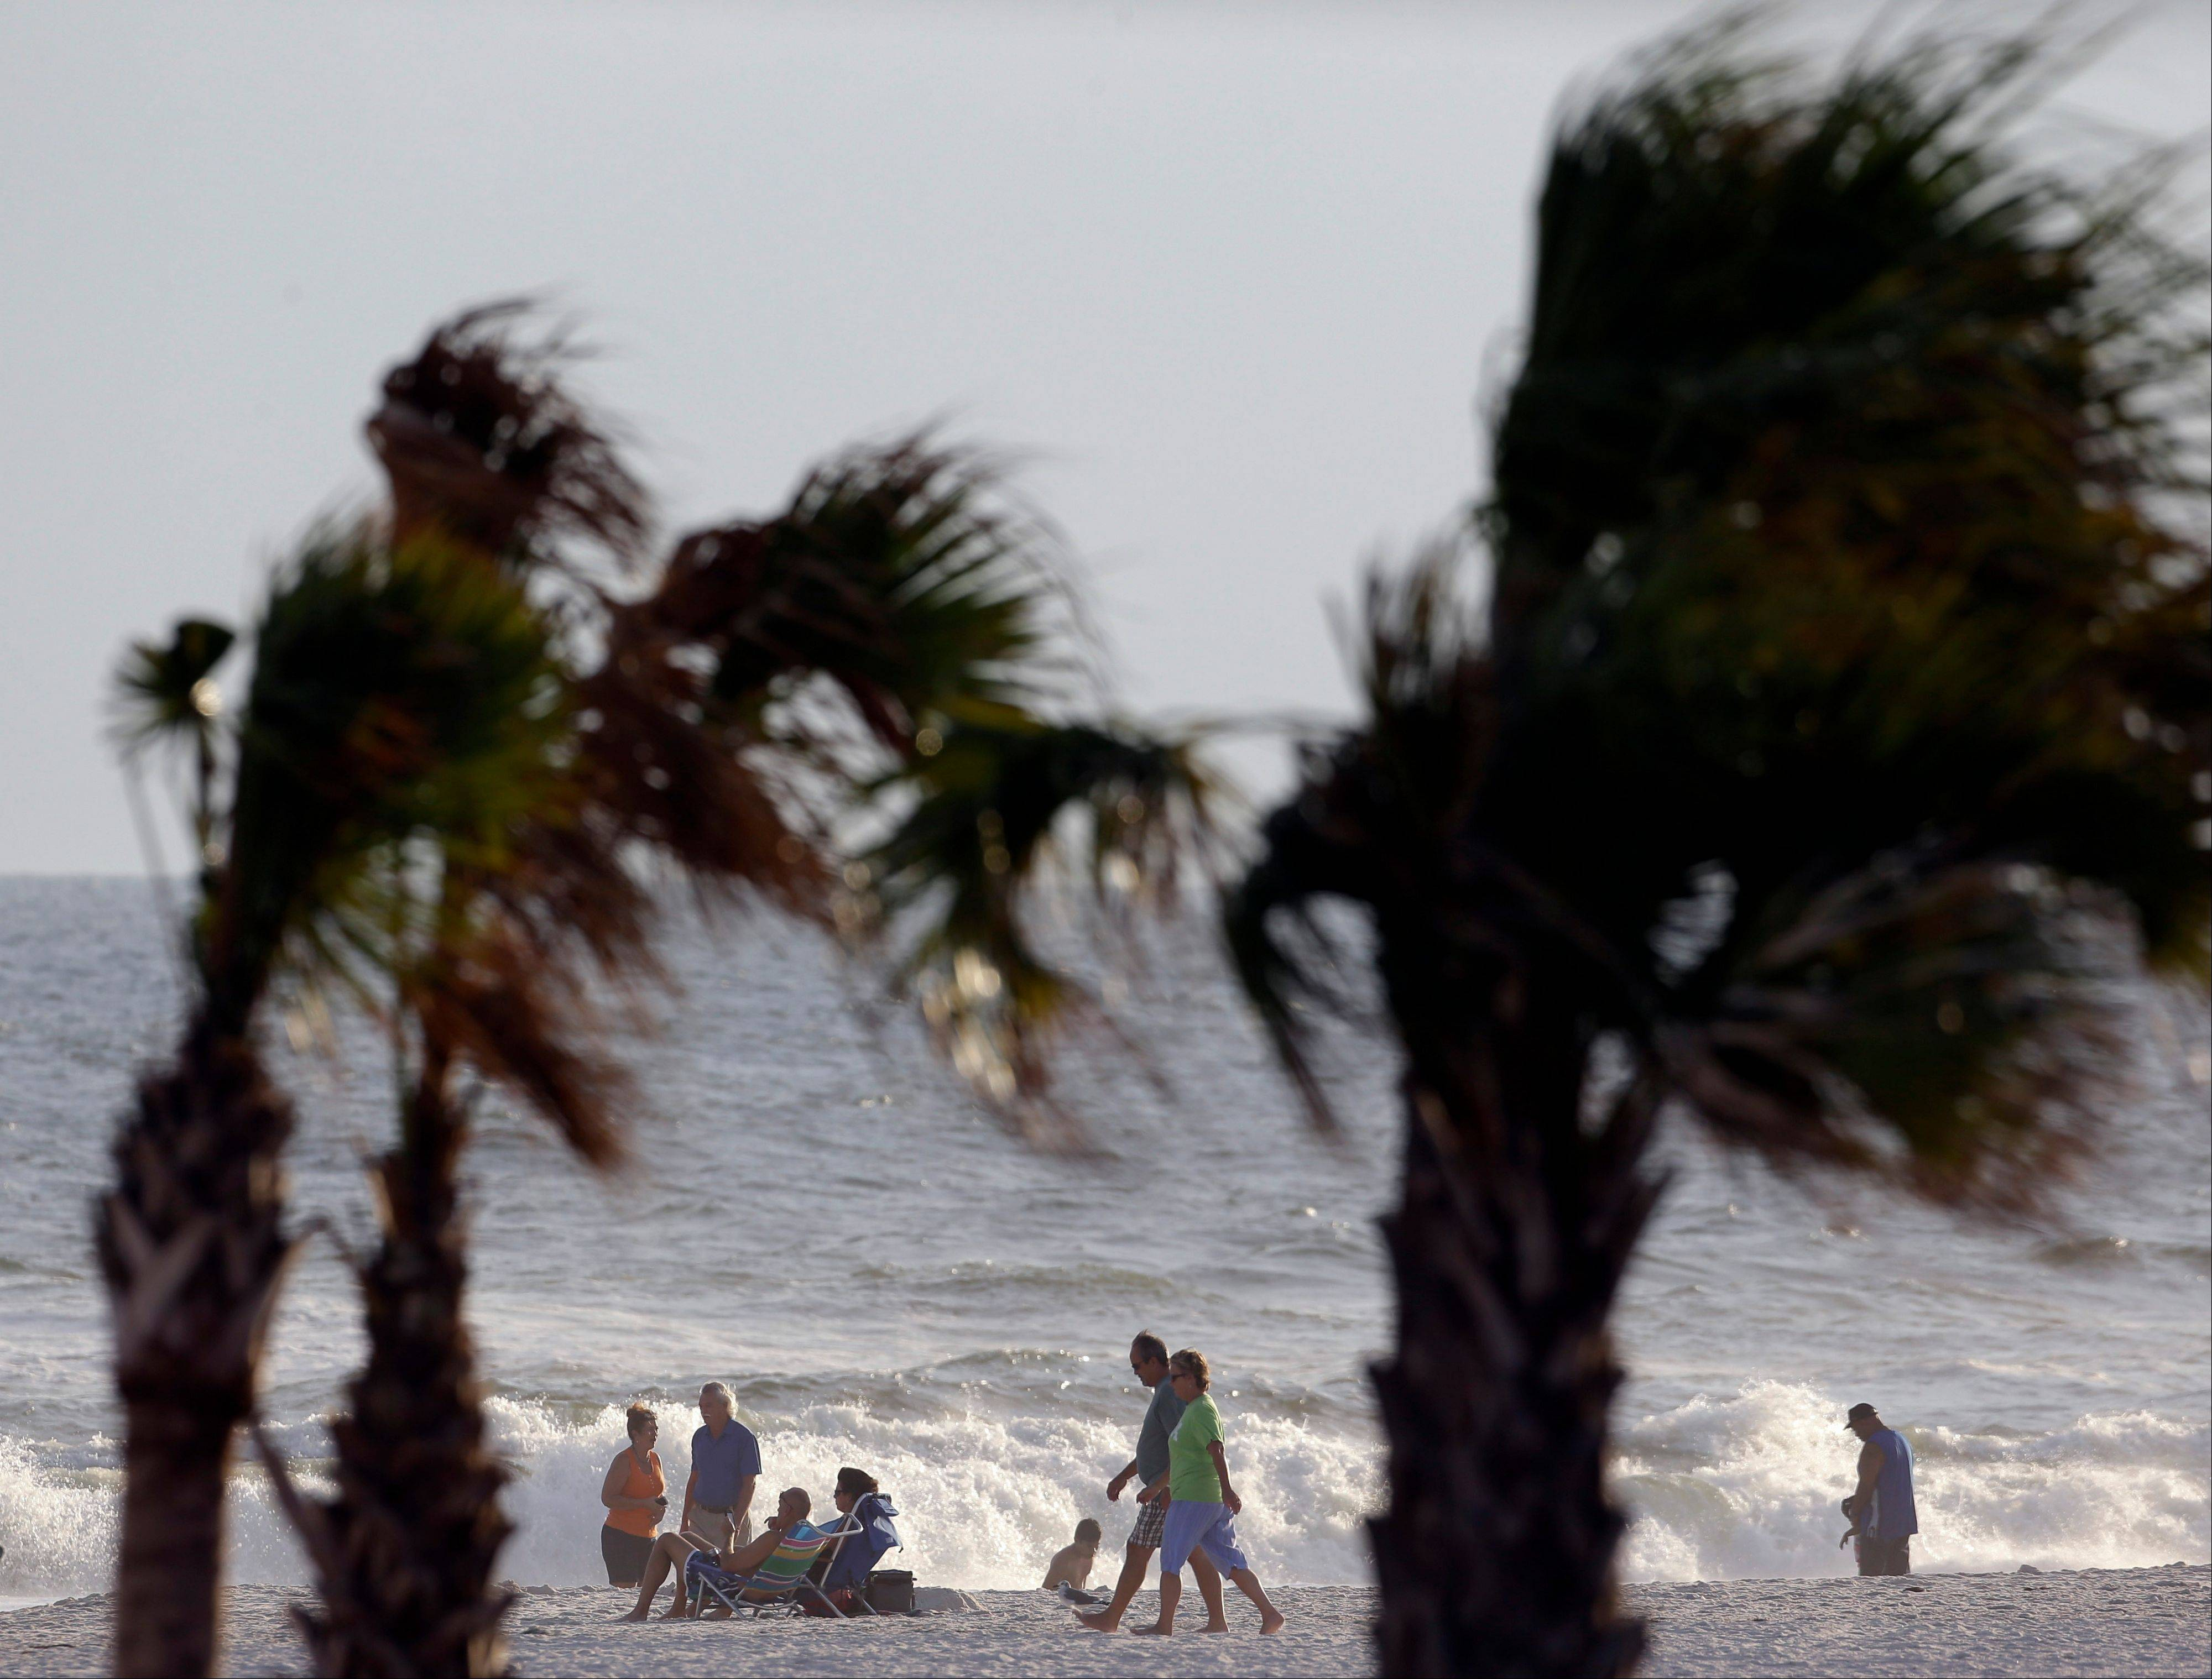 A stiff breeze blows palm trees along the coast in Gulf Shores, Ala., Saturday. Forecasters lifted tropical storm watches along the Alabama coast but surf conditions are still dangerous.